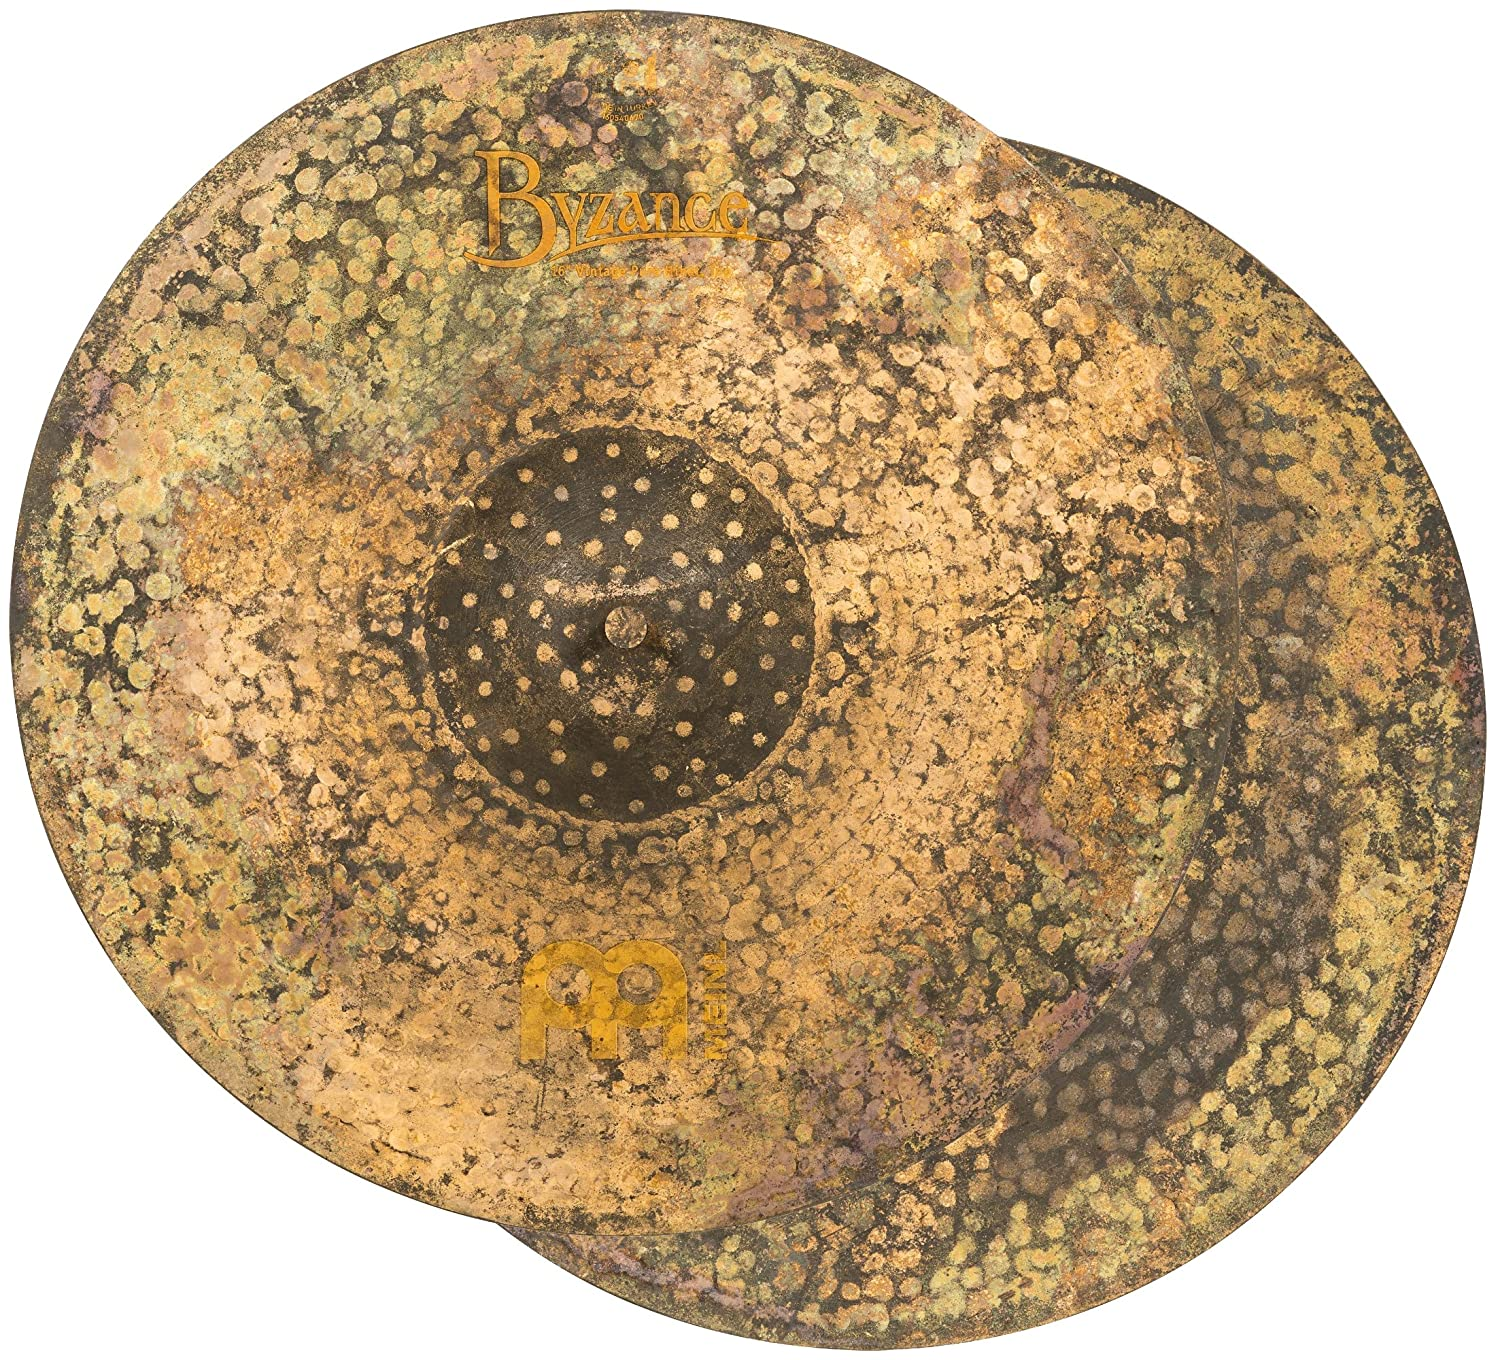 MEINL Cymbals マイネル Byzance Vintage Series ハイハットシンバル 16